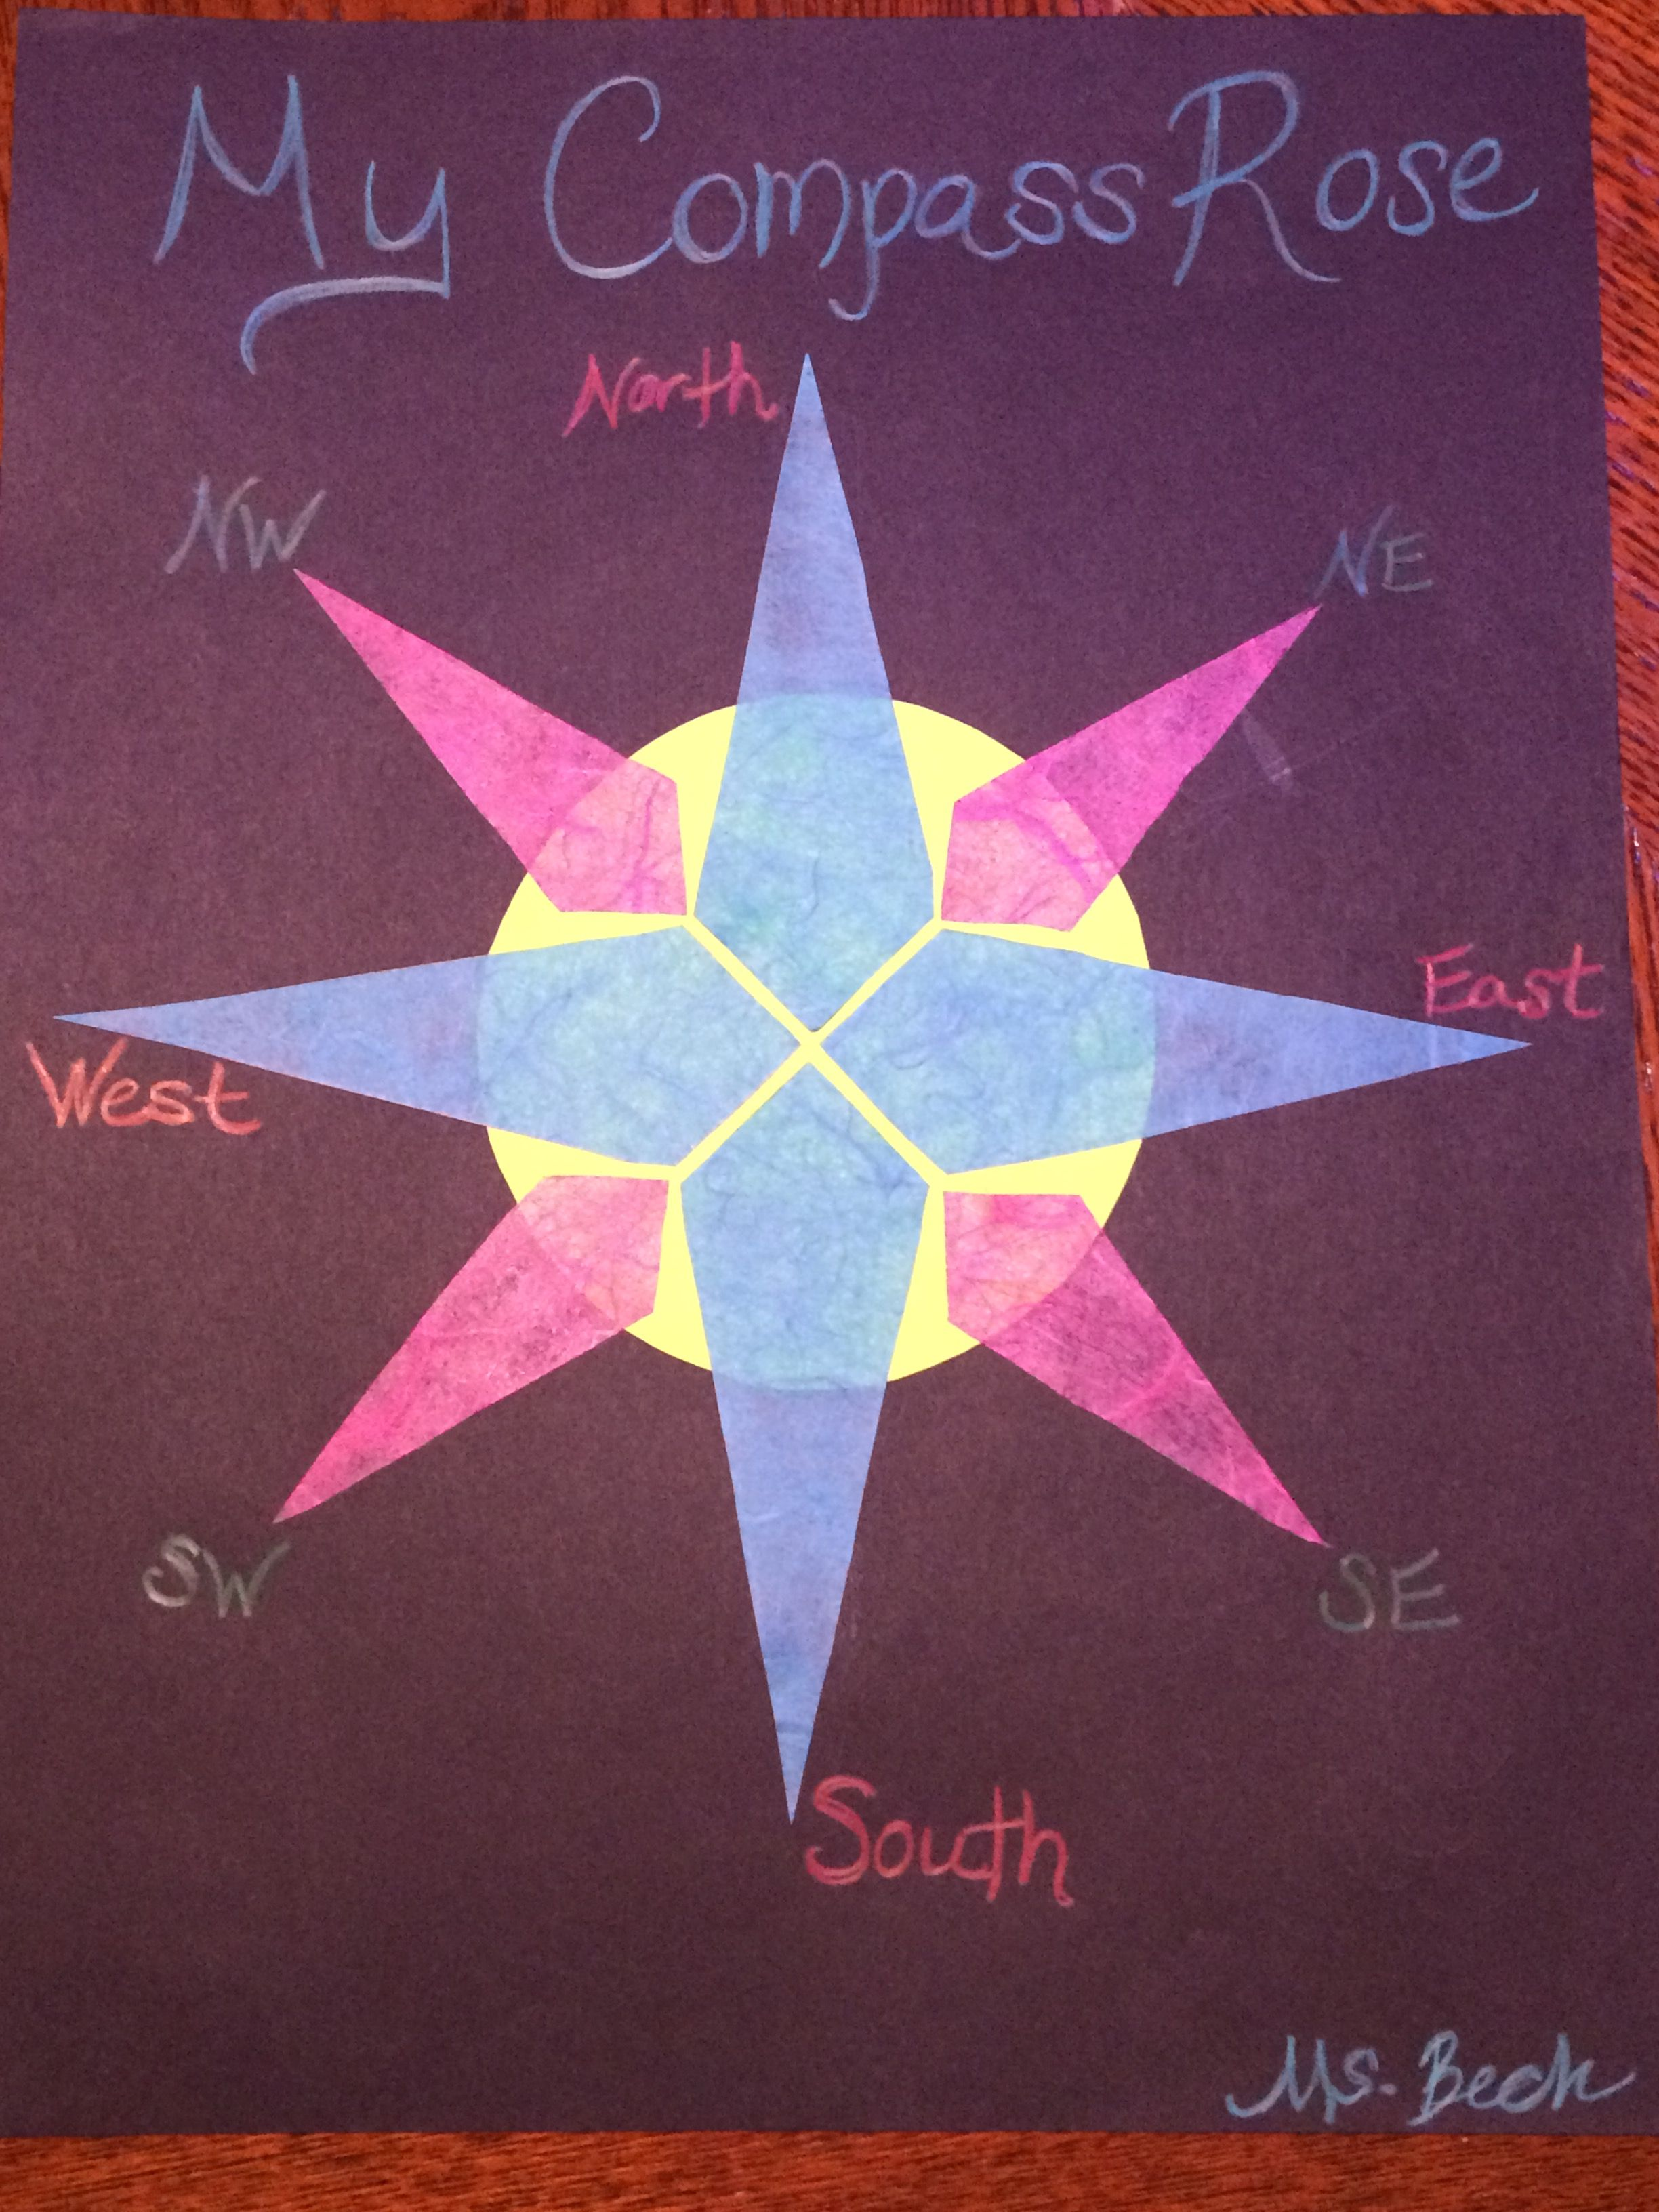 My Compass Rose